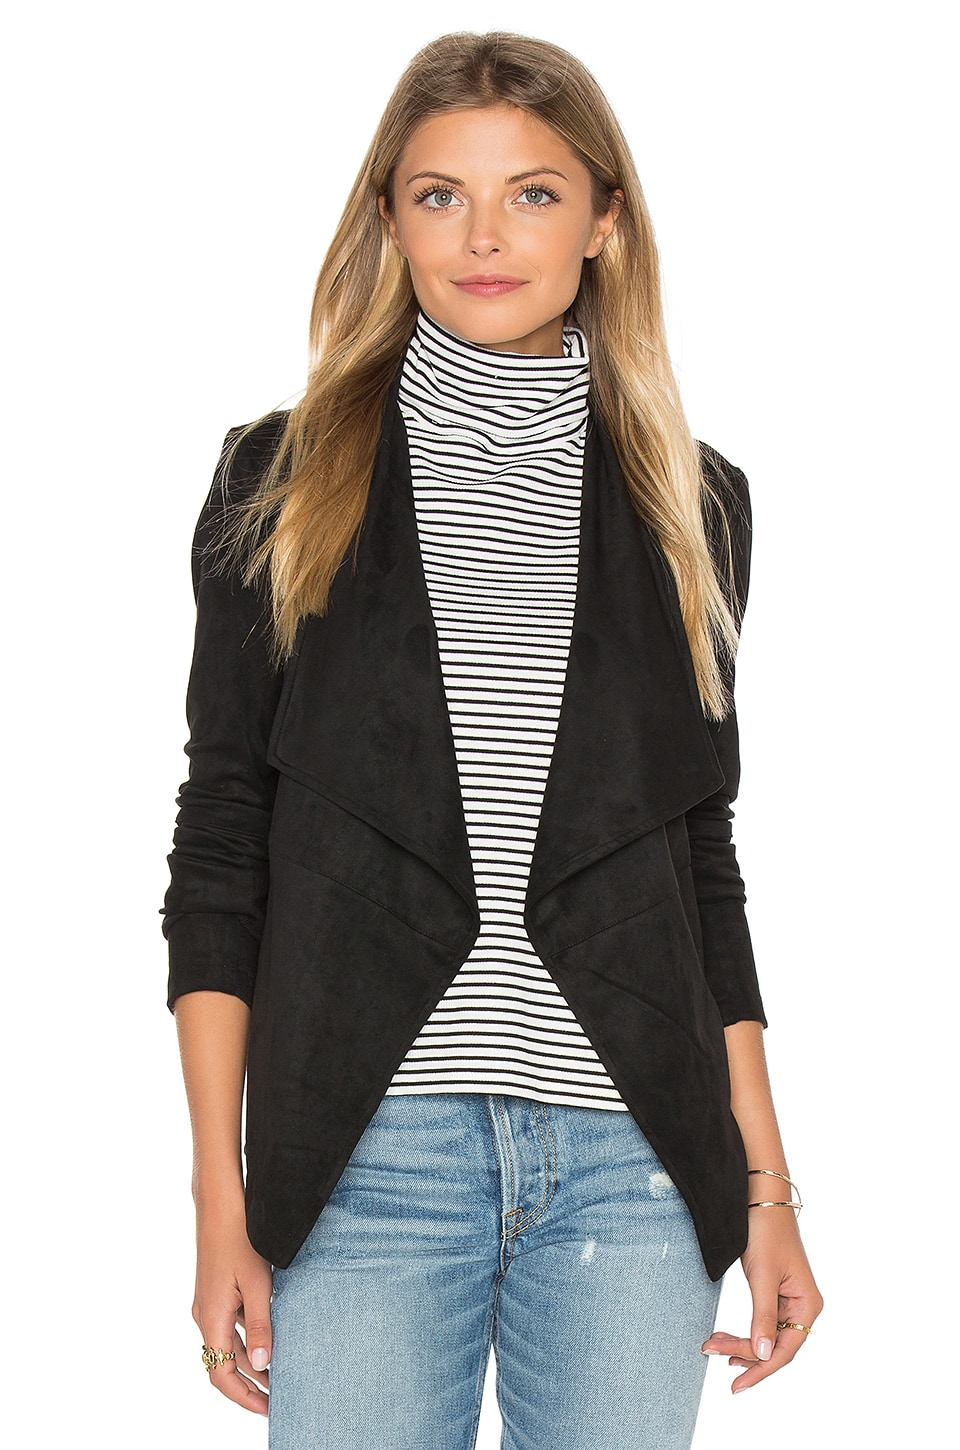 BB Dakota Nicholson Jacket in Black